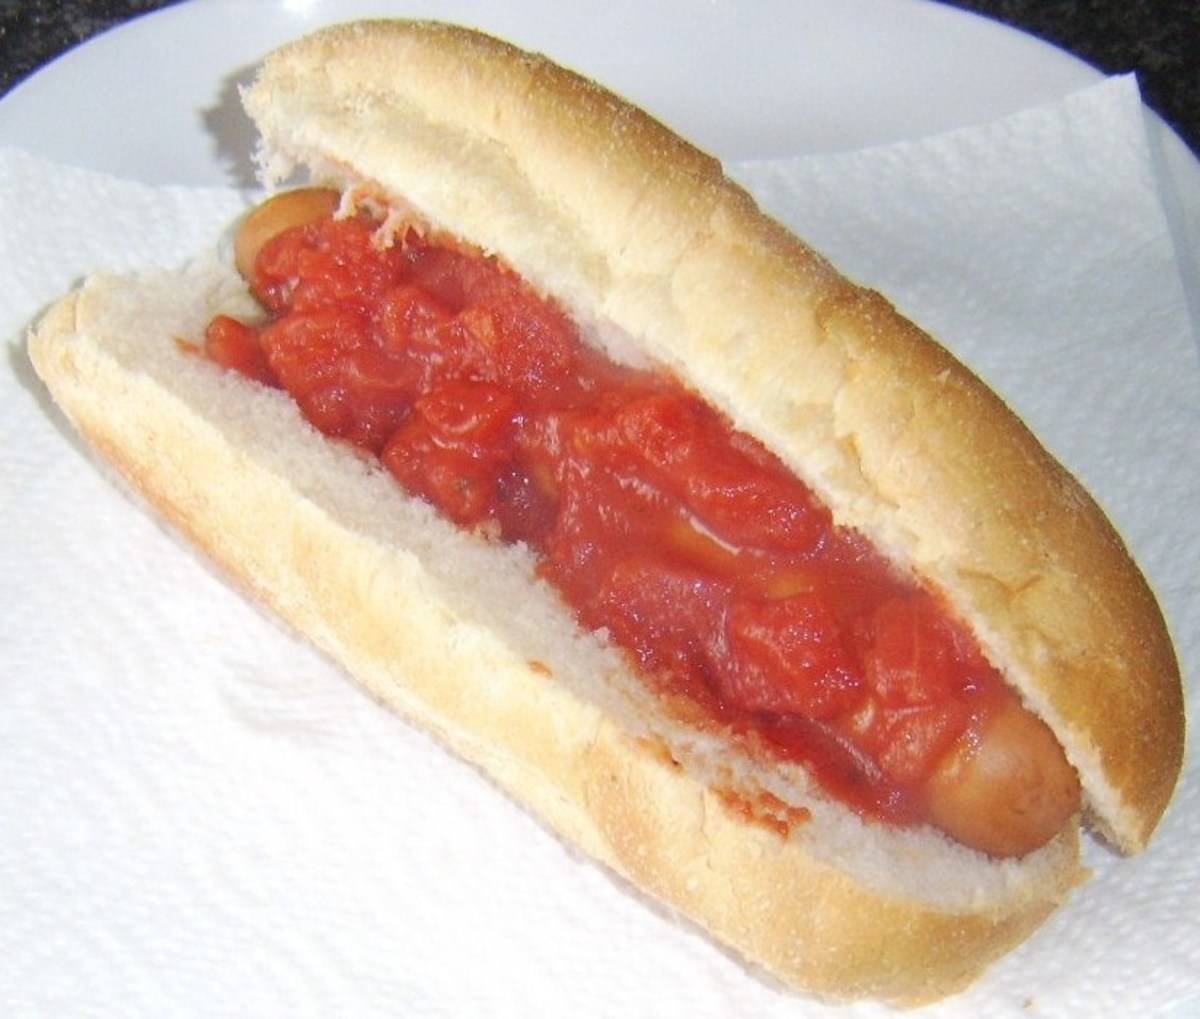 Tomato sauce on hot dog